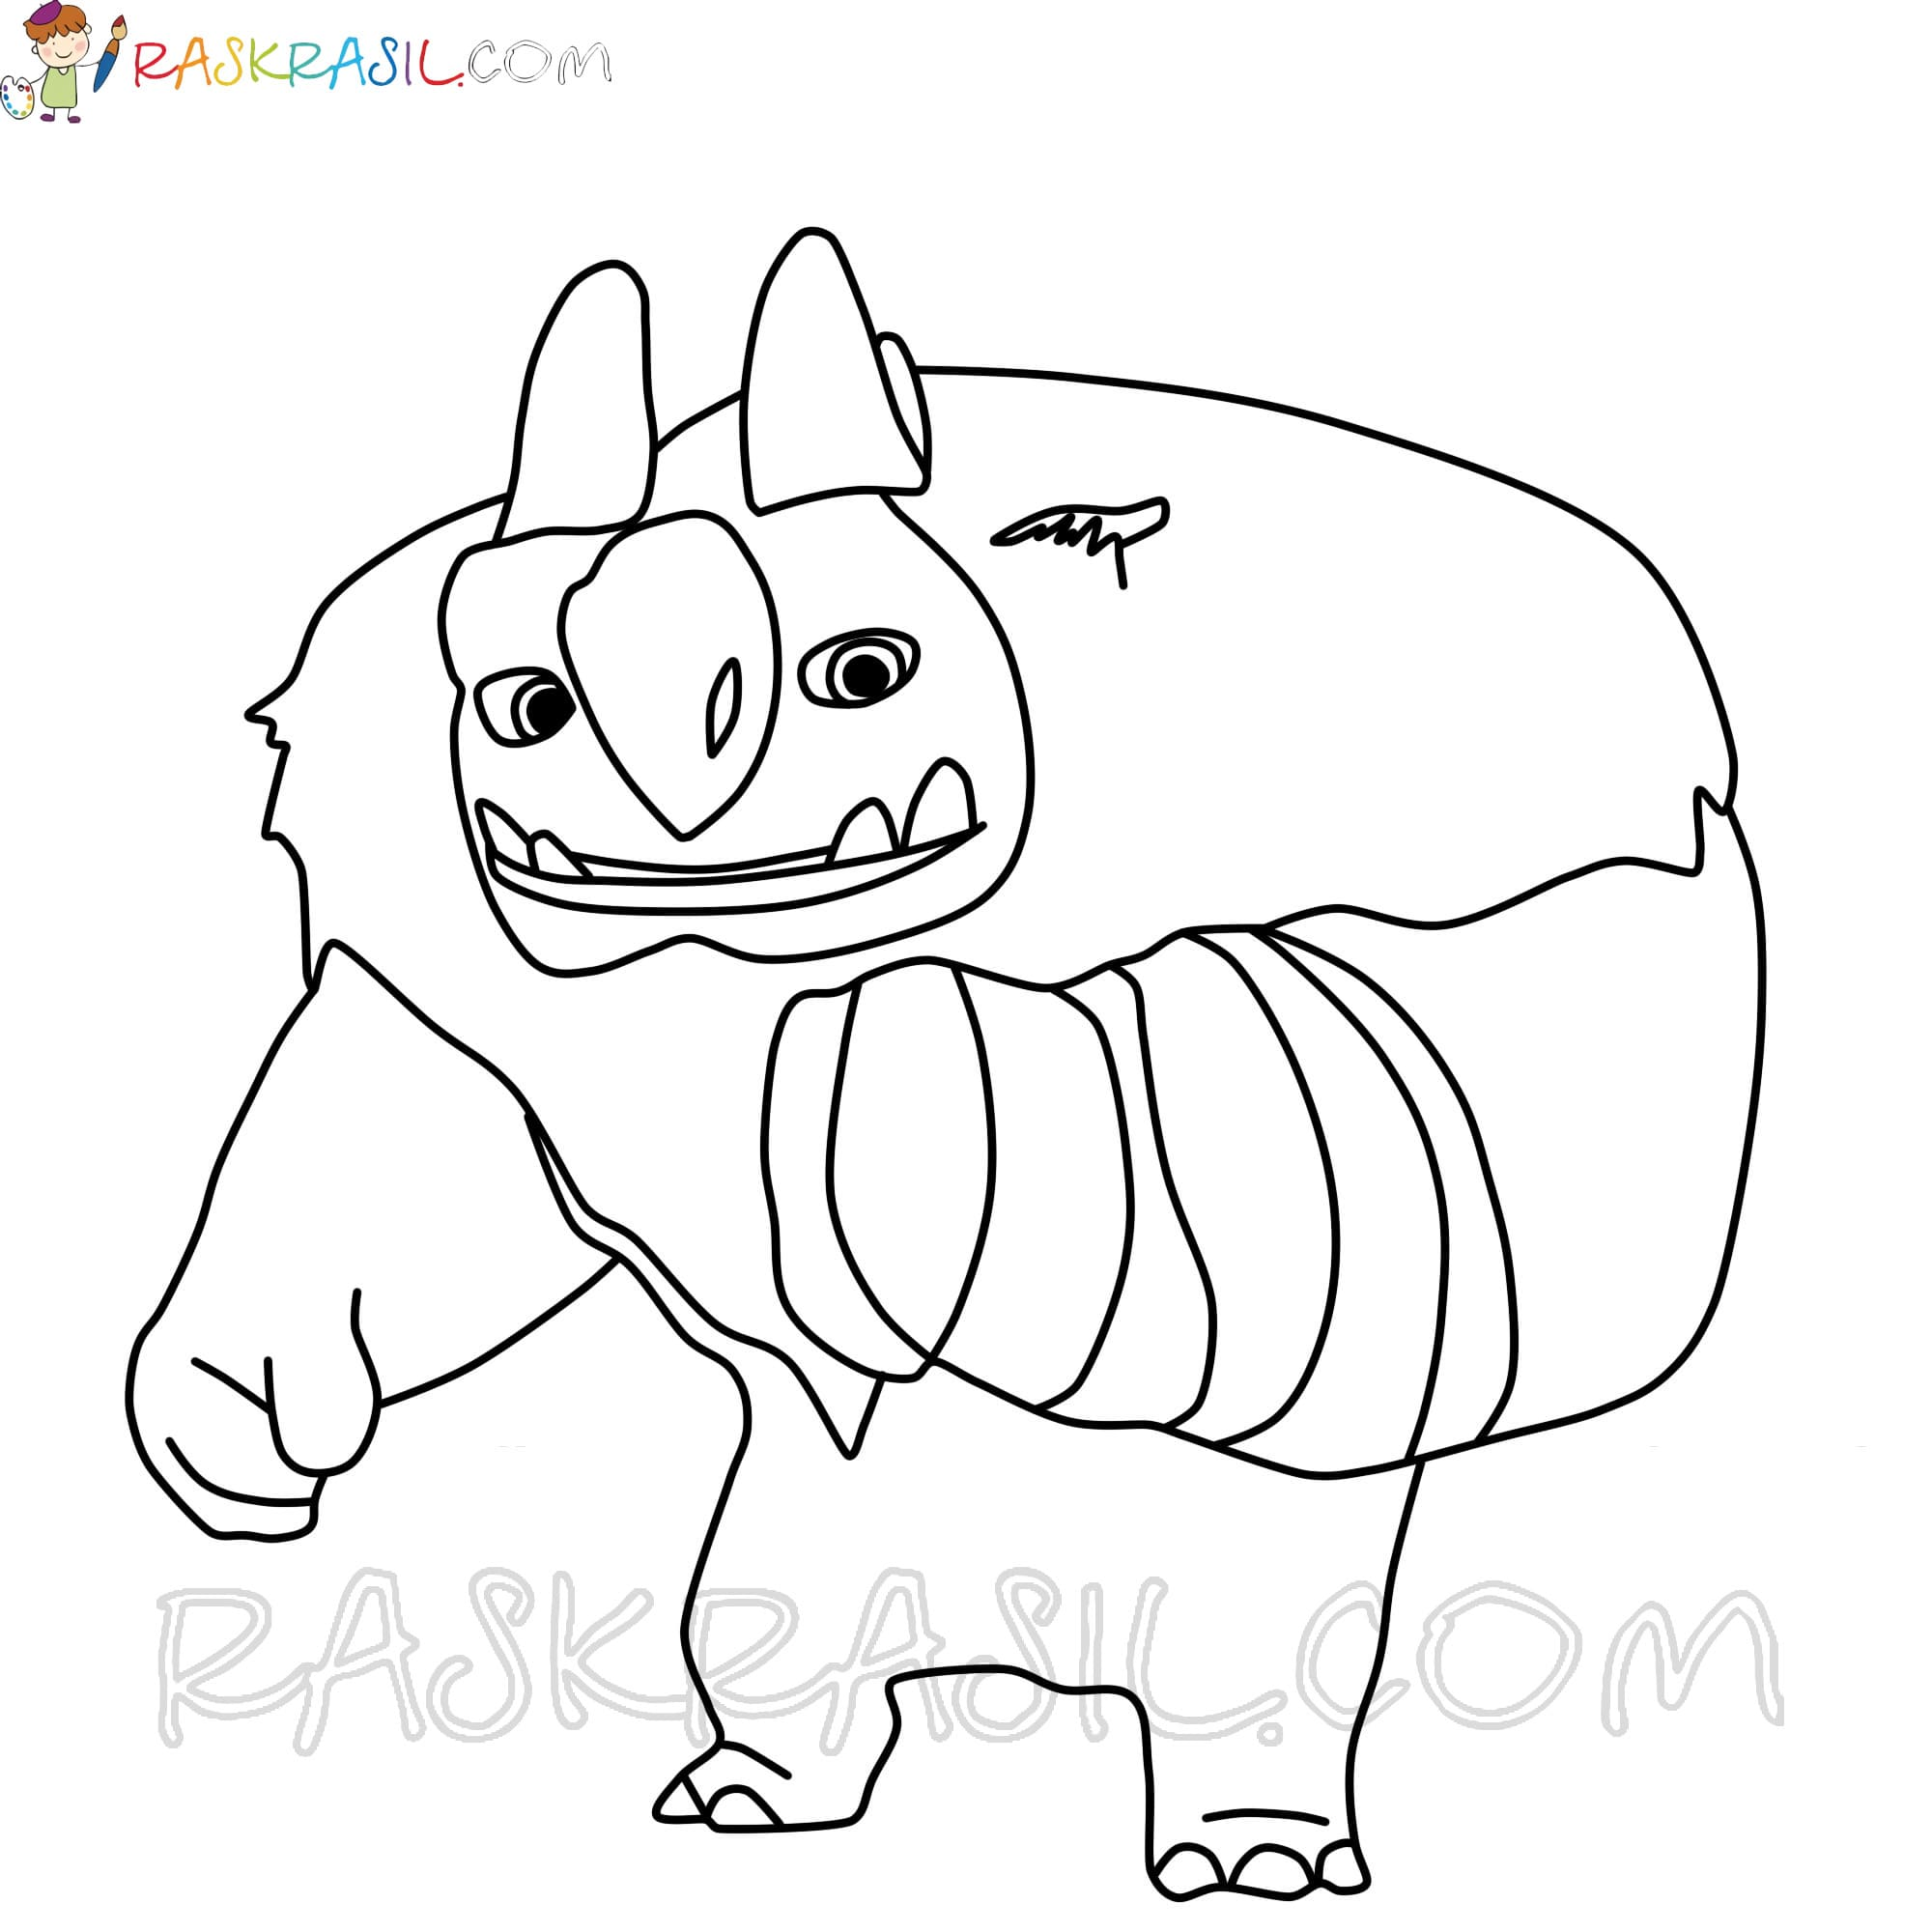 Trollhunters Coloring Pages 32 Unique Images Free Printable